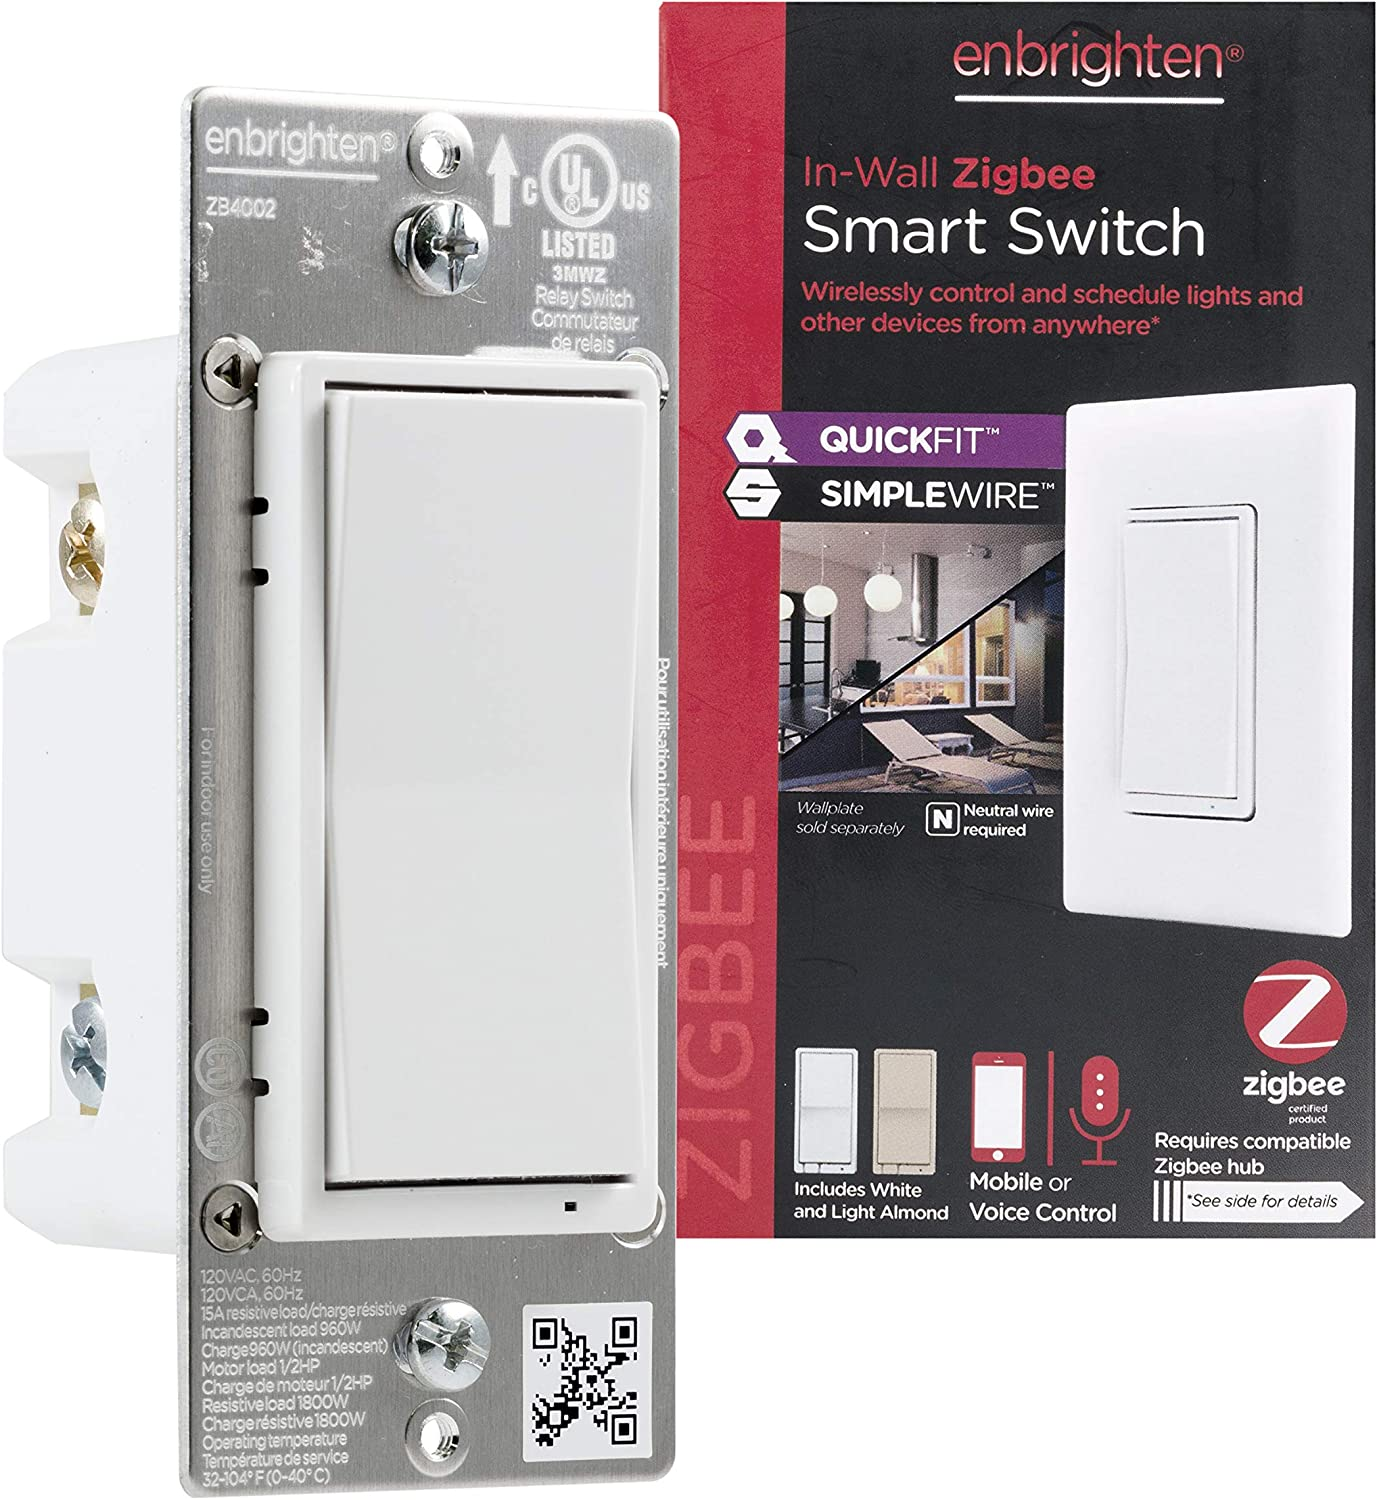 Enbrighten Zigbee Smart Light Switch with QuickFit and SimpleWire, Pairs Directly with Echo Studio/Echo Show 10/Echo Plus 1st & 2nd Gen, White & Light Almond, 43076